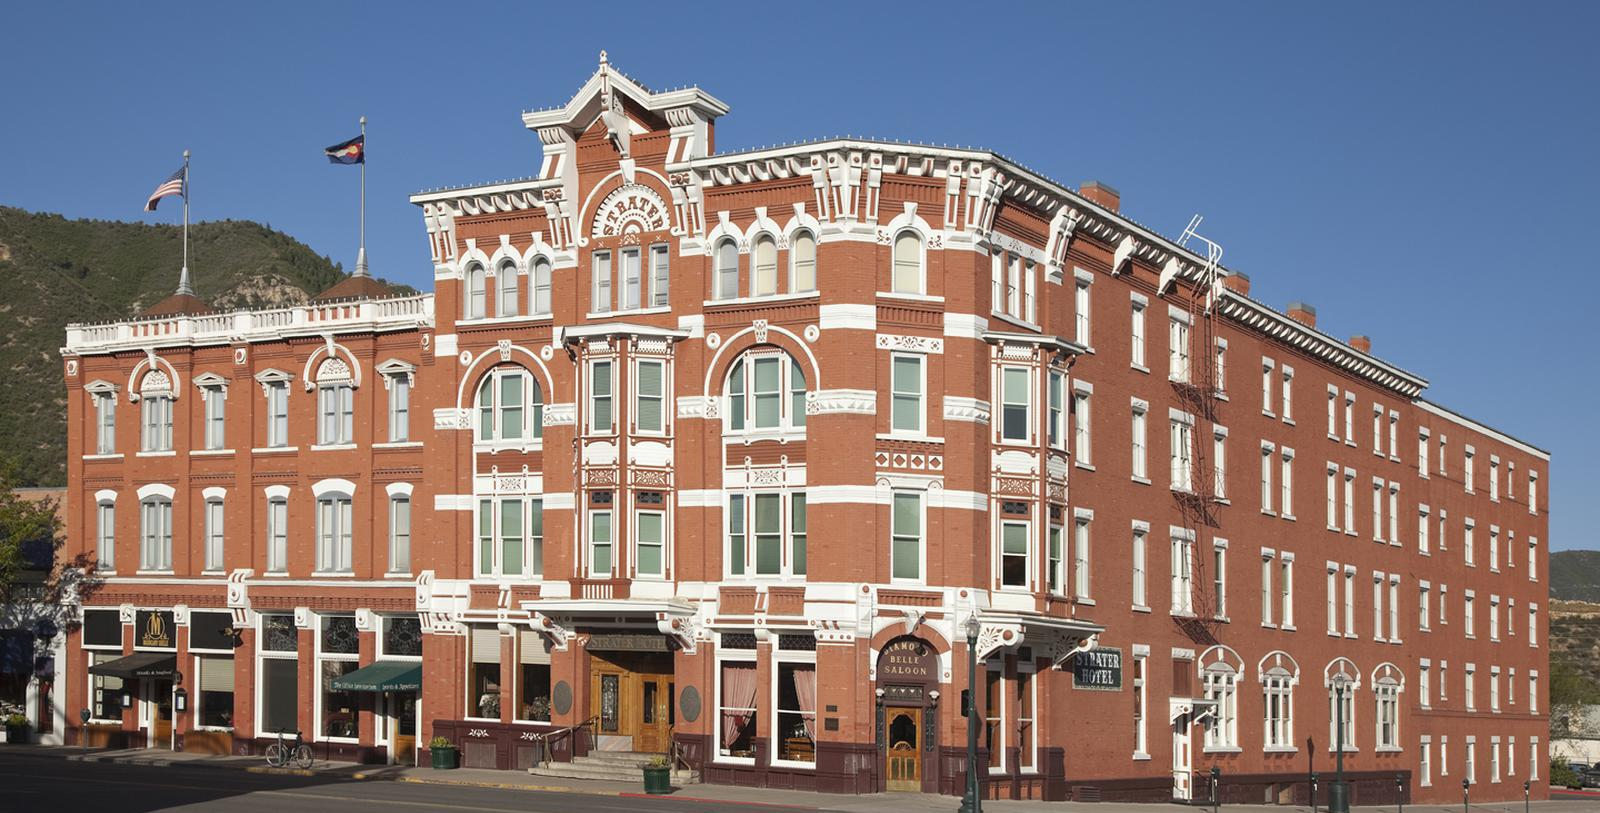 Image of Hotel Exterior The Strater Hotel, 1887, Member of Historic Hotels of America, in Durango, Colorado, Special Offers, Discounted Rates, Families, Romantic Escape, Honeymoons, Anniversaries, Reunions